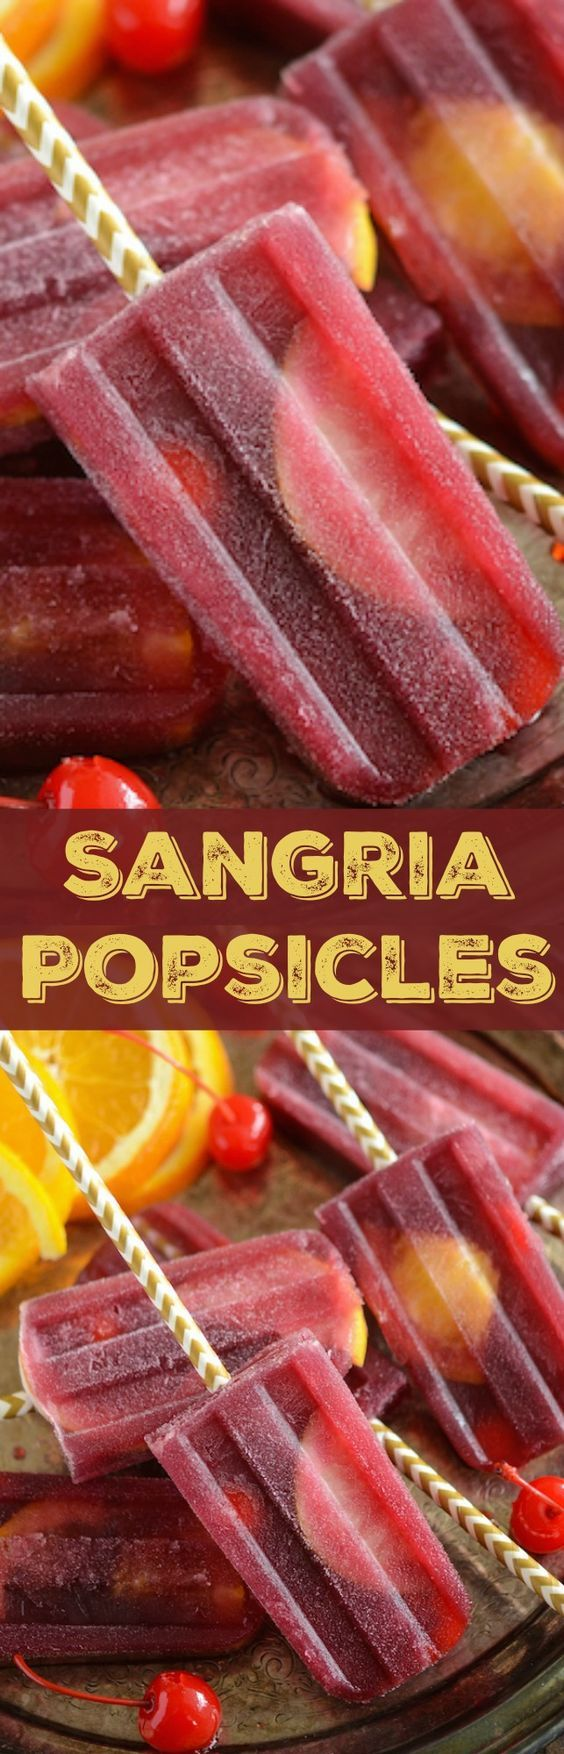 Sangria Popsicles: the perfect adult summer afternoon treat filled with whatever fruit you have on hand!